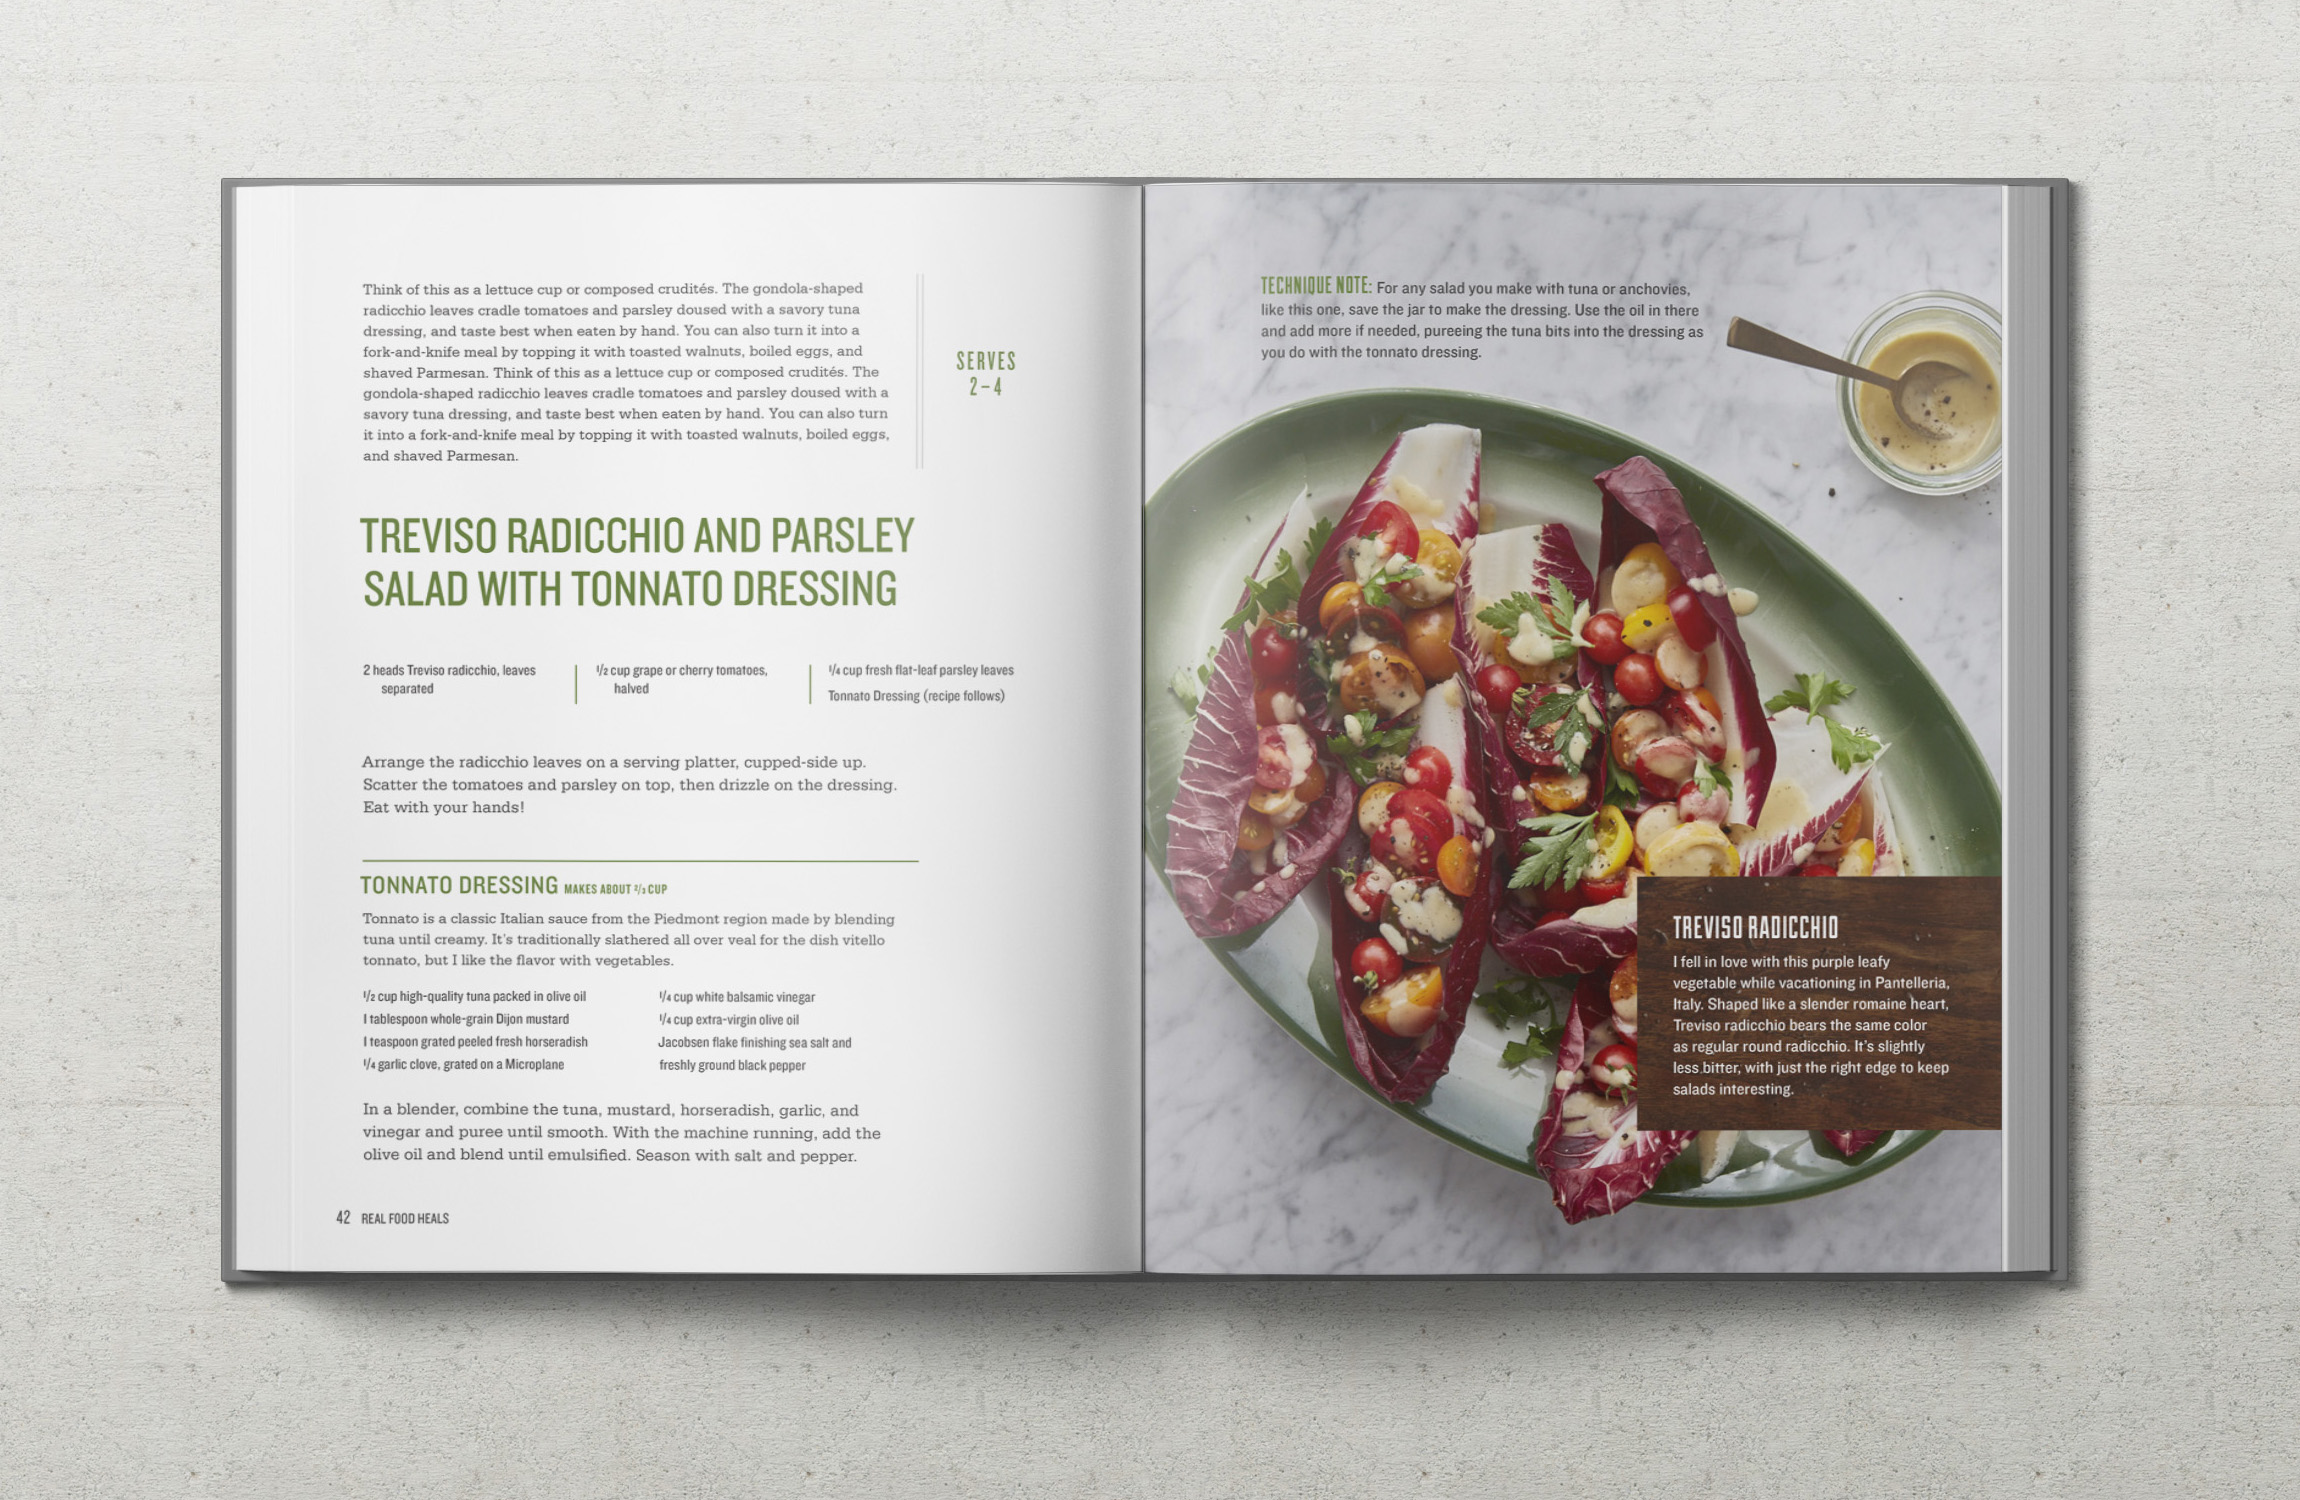 Real Food Heals recipe for Traviso Radicchio and Parsley Salad with Tonnato Dressing